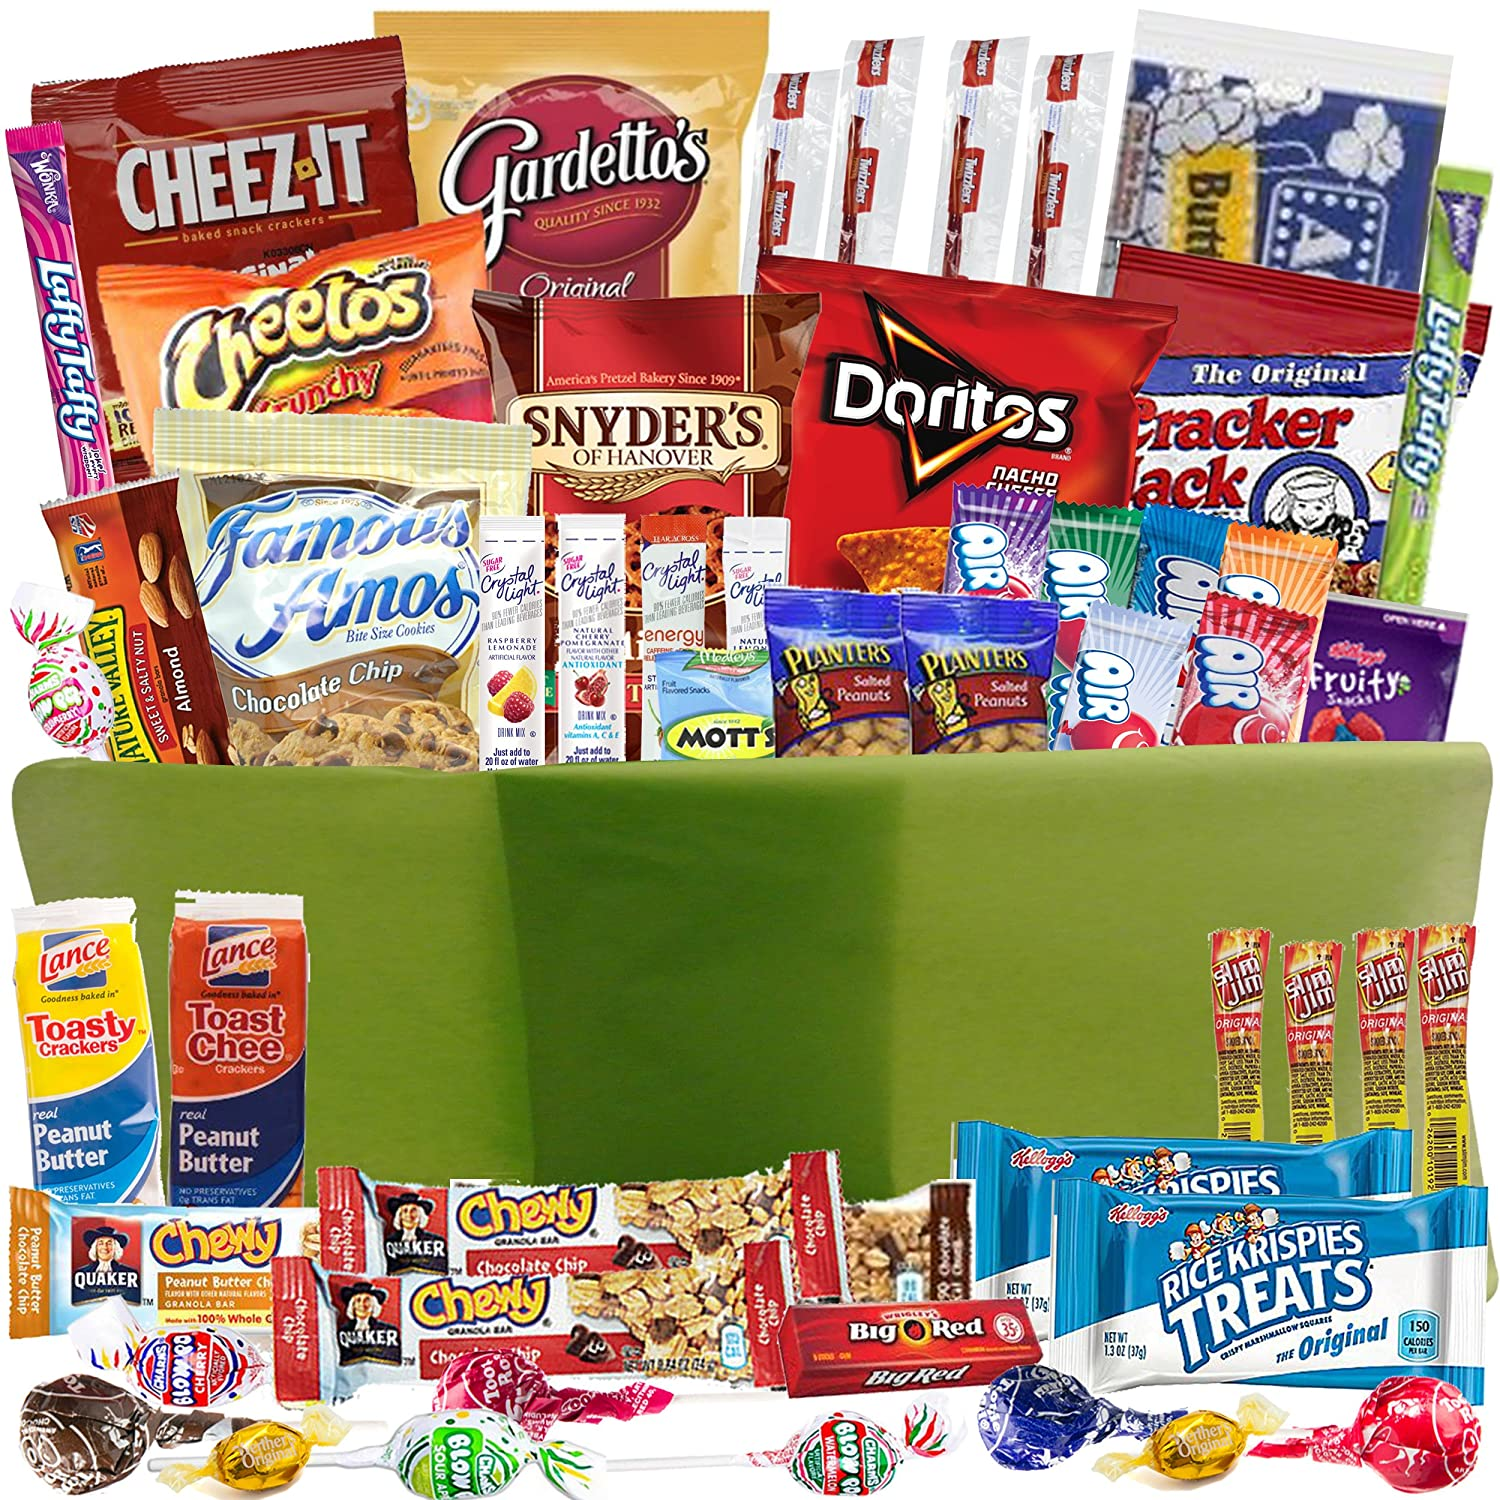 Catered Cravings Sweet and Salty Snacks Gift Basket(52 Count)